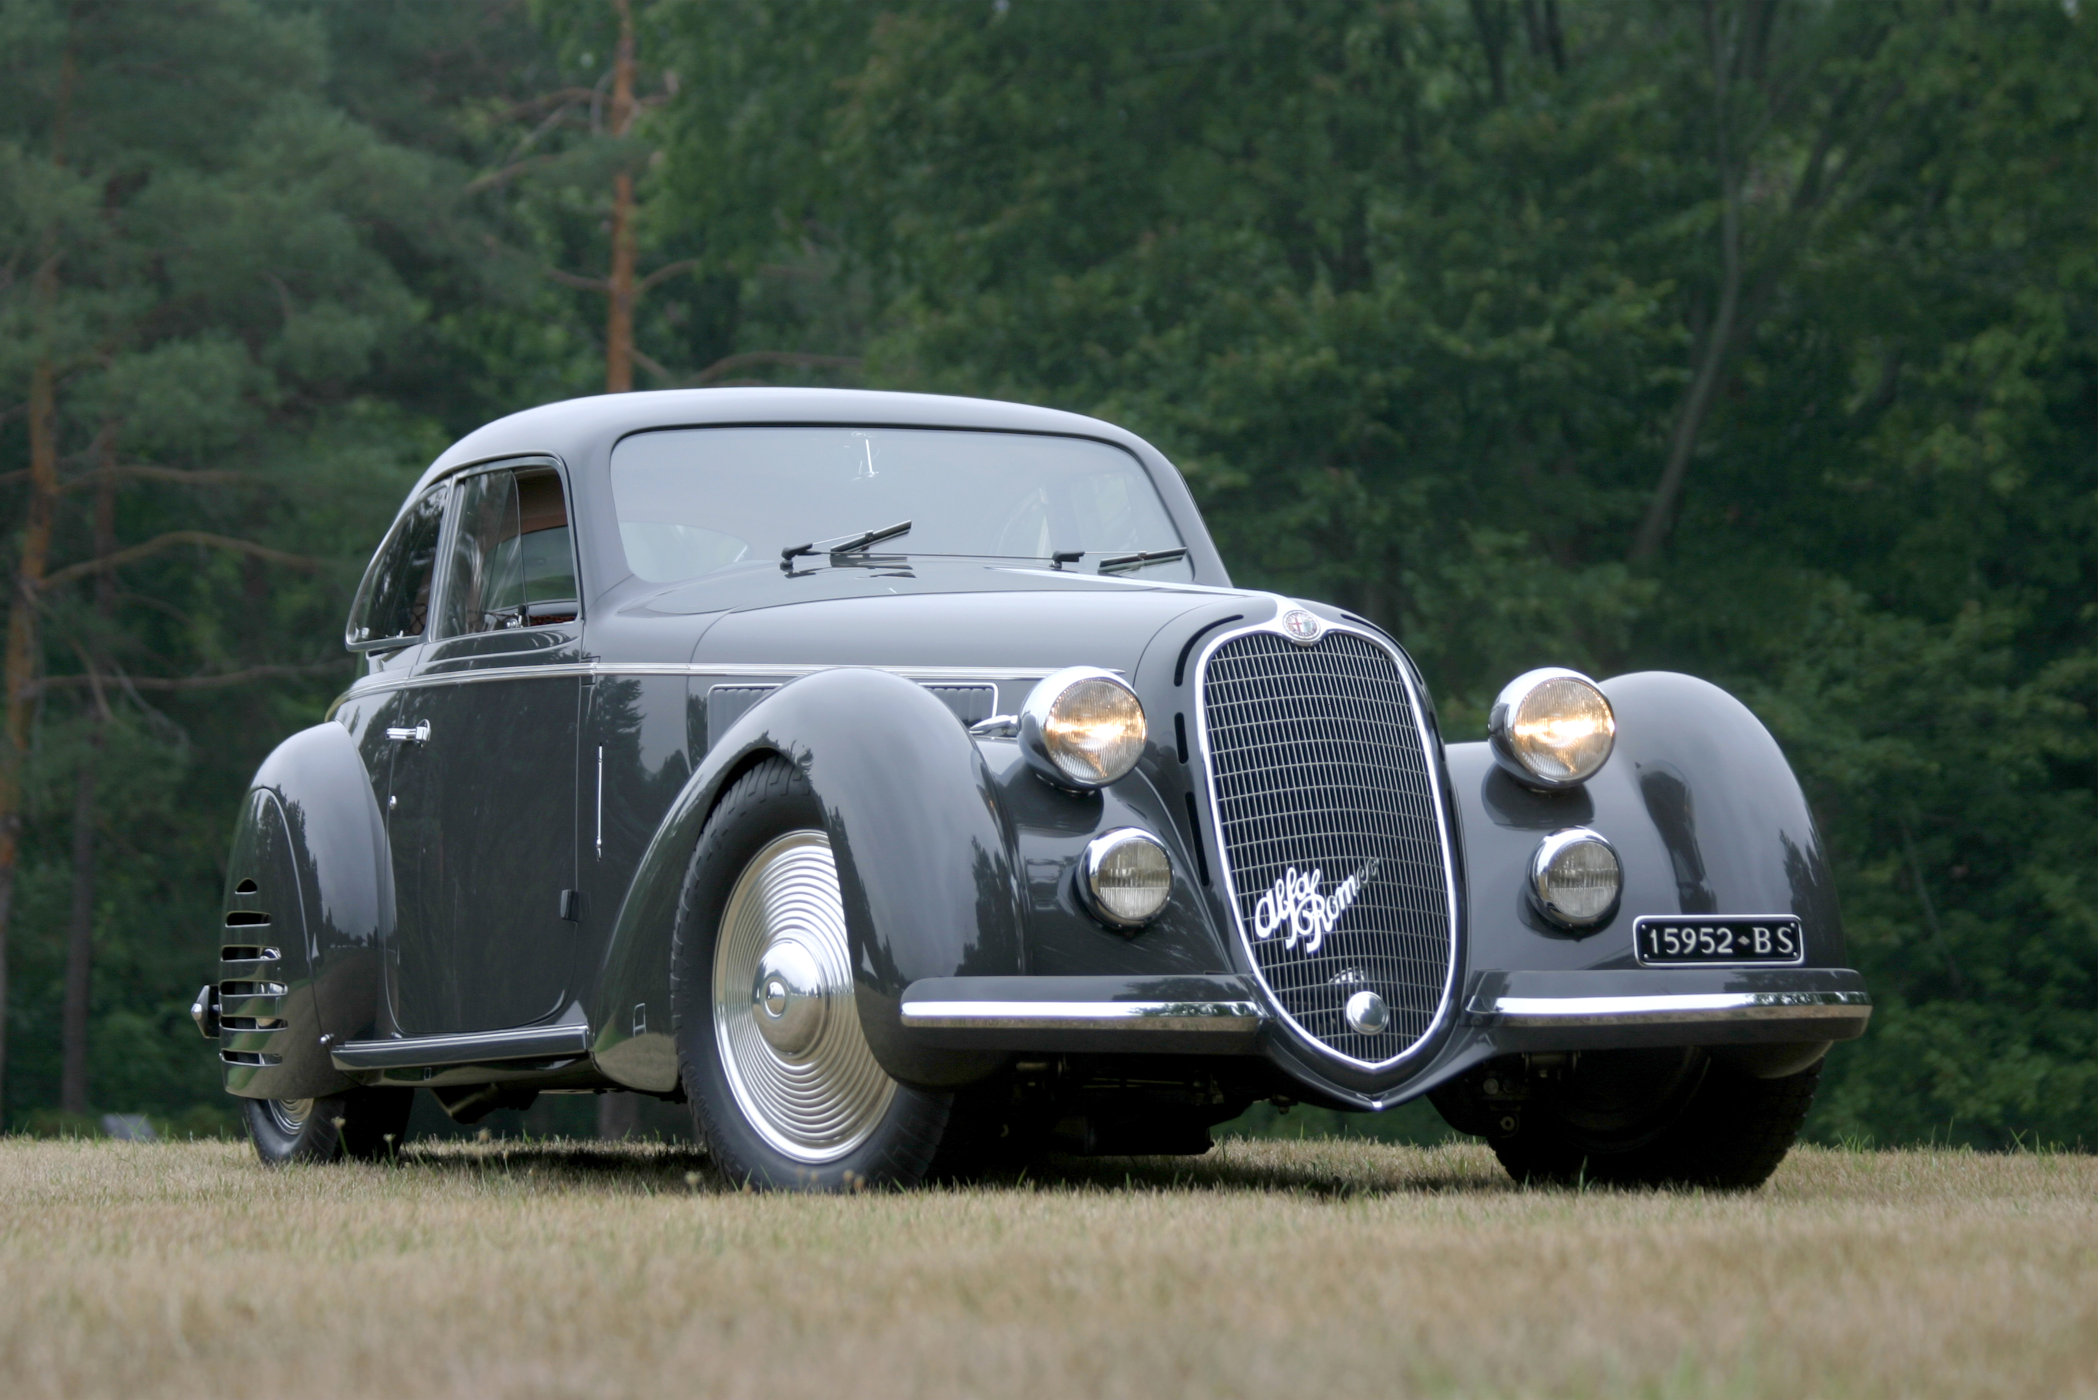 The 1938 Alfa Romeo 8C 2900 B, widely regarded as one of the most beautiful cars ever created